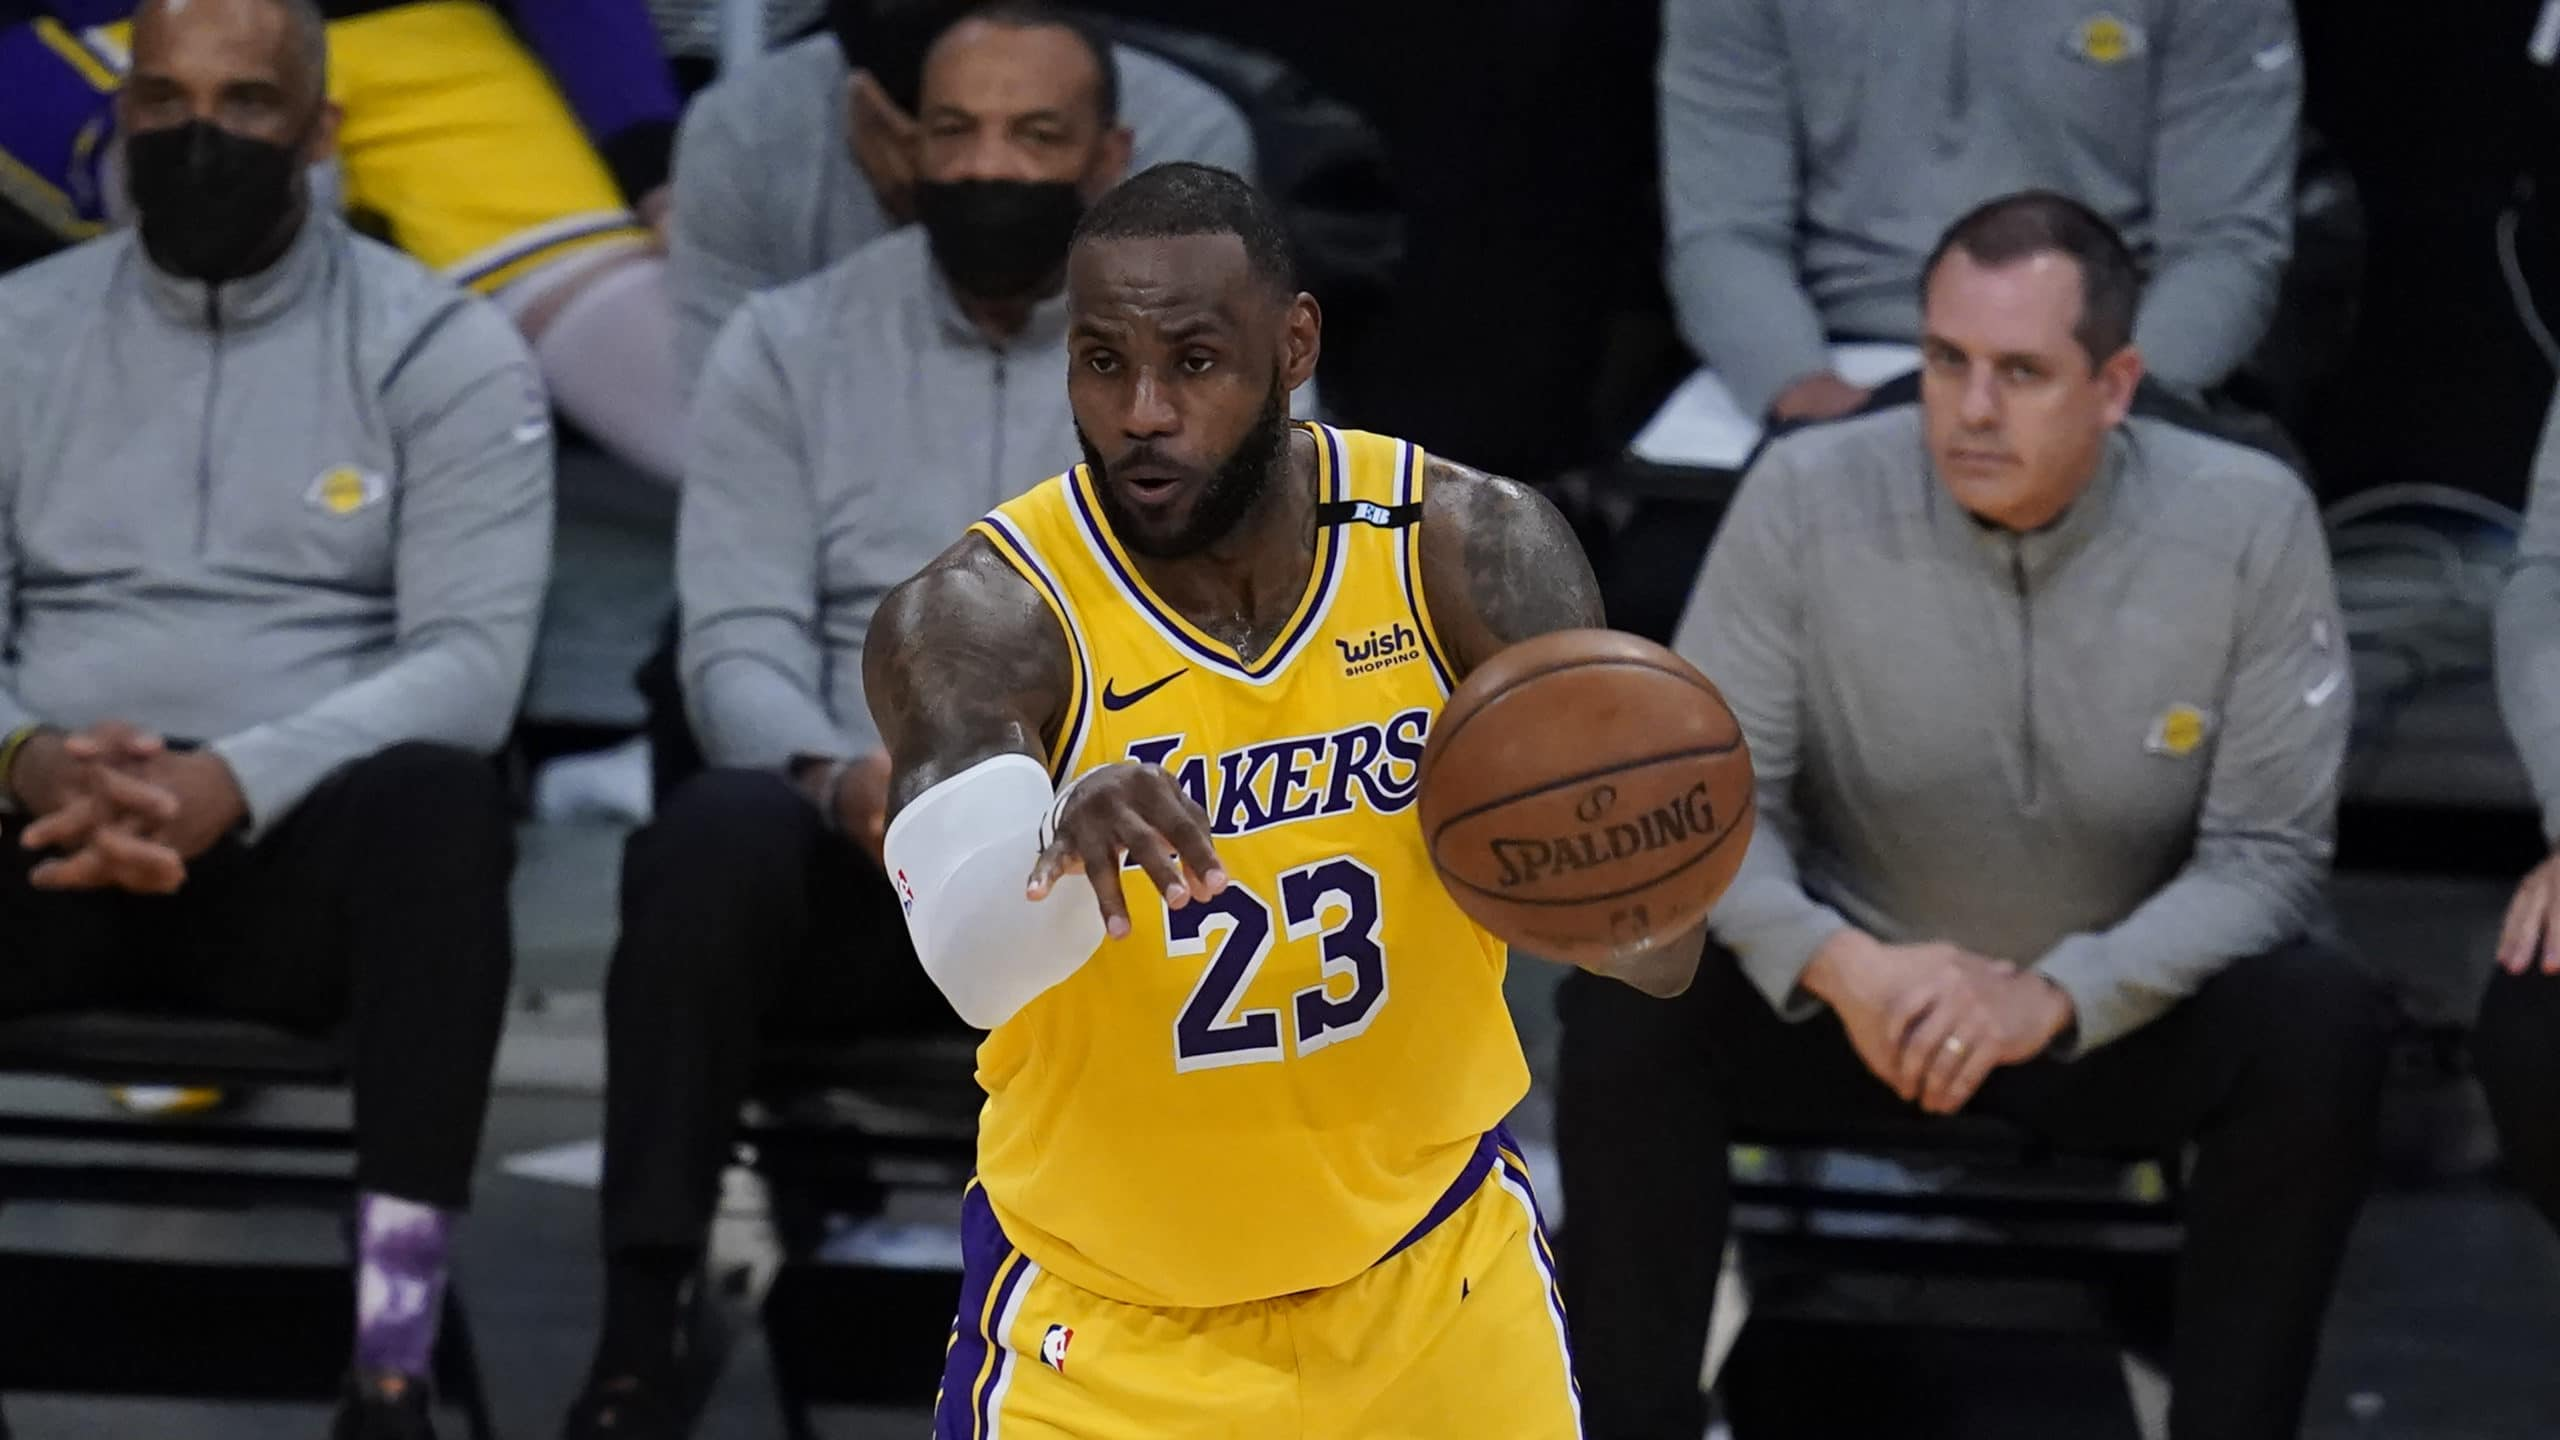 lebron-james-posts-vengeance-video-from-gladiator-after-lakers-playoff-exit.jpg